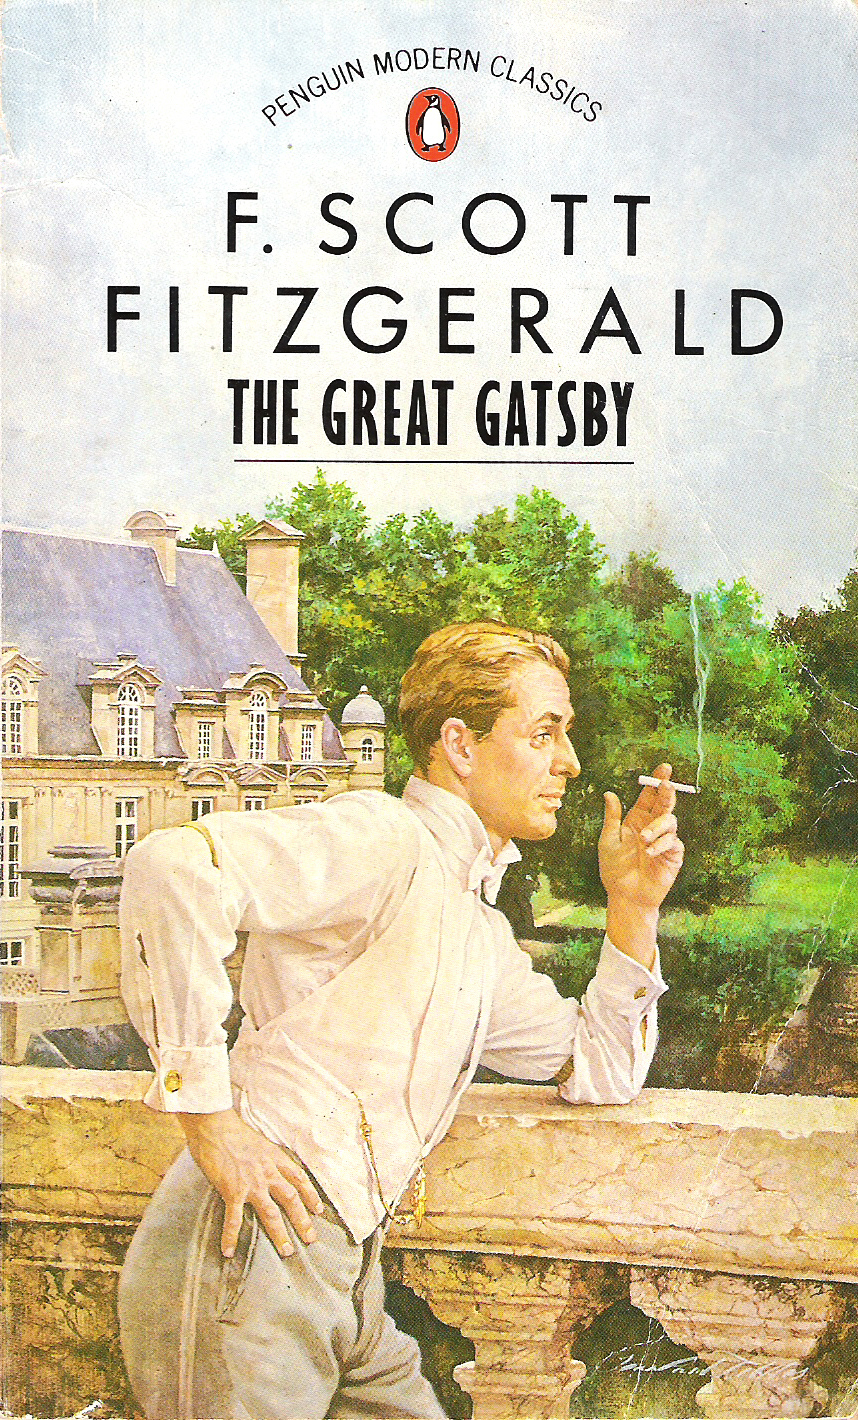 a biography of f scott fitzgerald an american author Biography of f scott fitzgerald francis scott key fitzgerald was a jazz age novelist and short story writer who is considered to be among the greatest twentieth-century american writers born on september 24, 1896, he was the only son of an aristocratic father and a provincial, working-class mother.